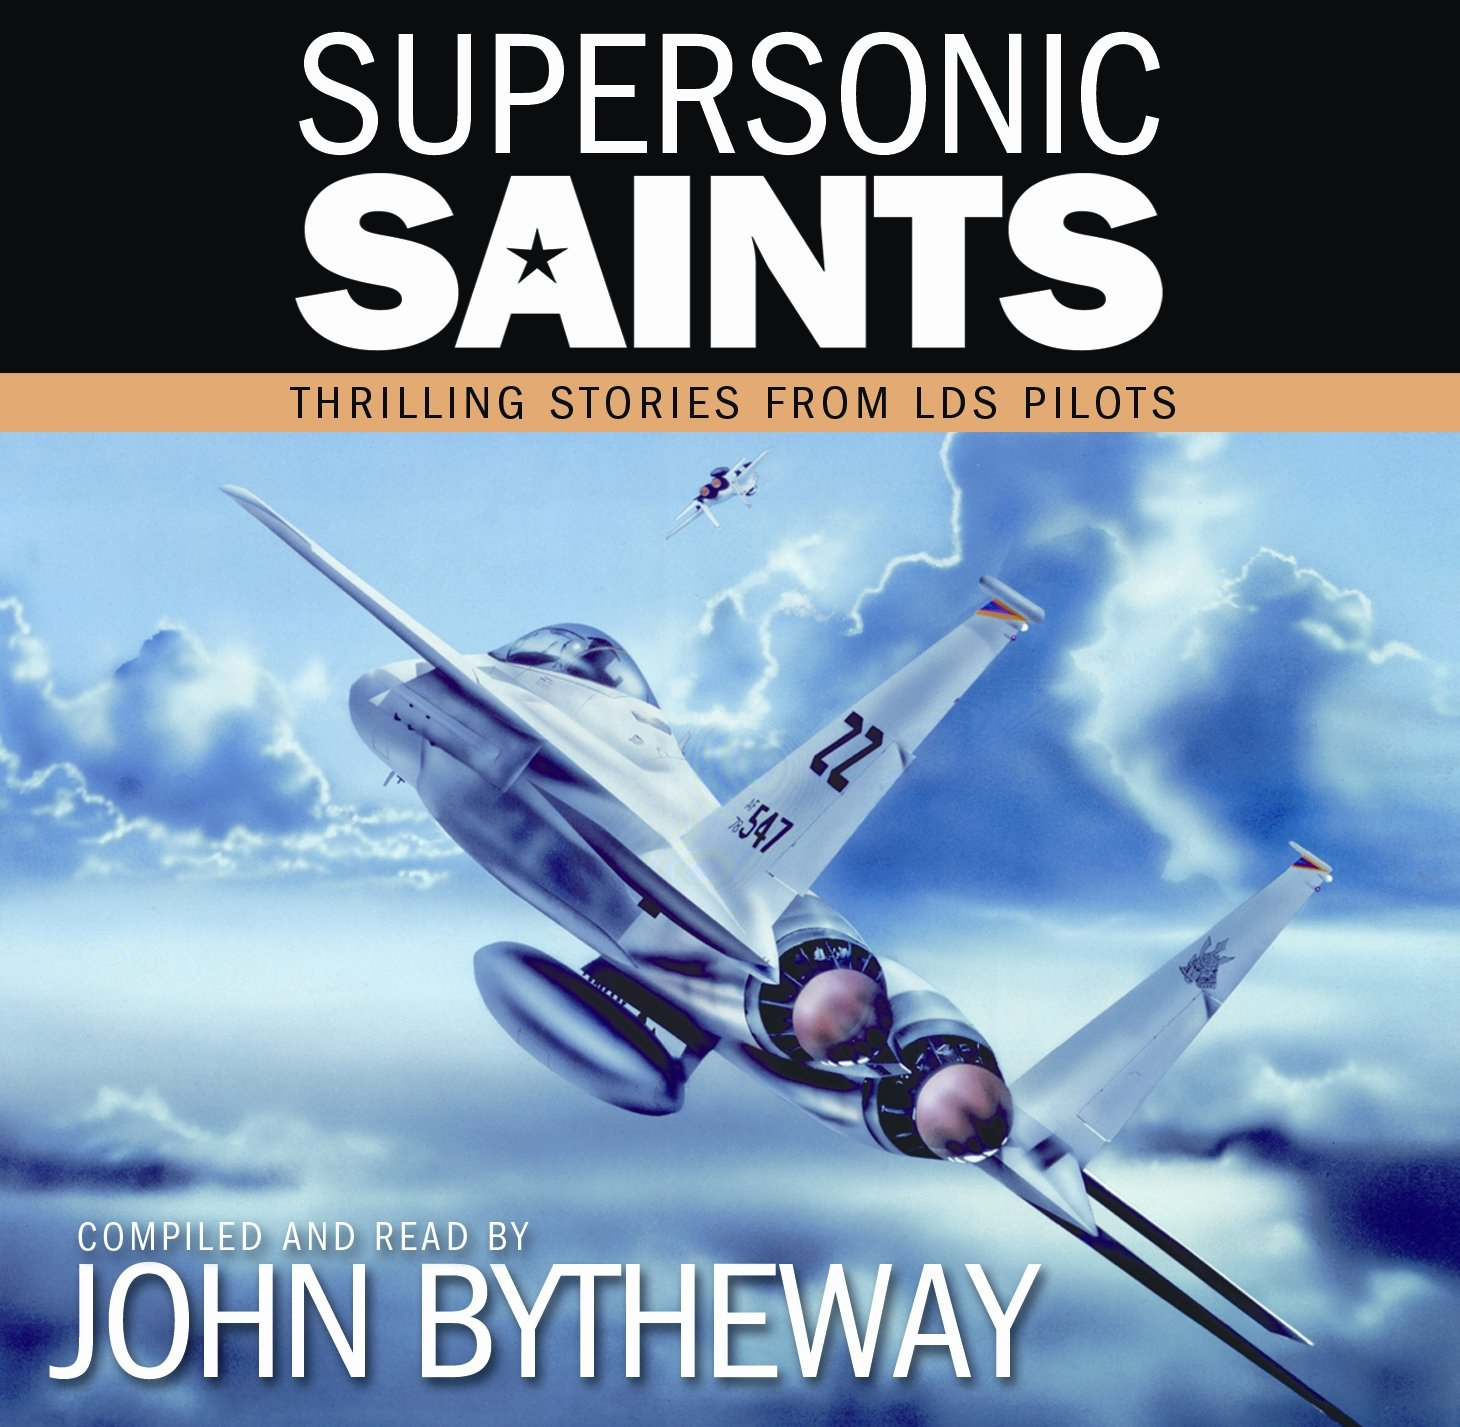 Download Supersonic Saints Thrilling Stories From LDS Pilots ebook